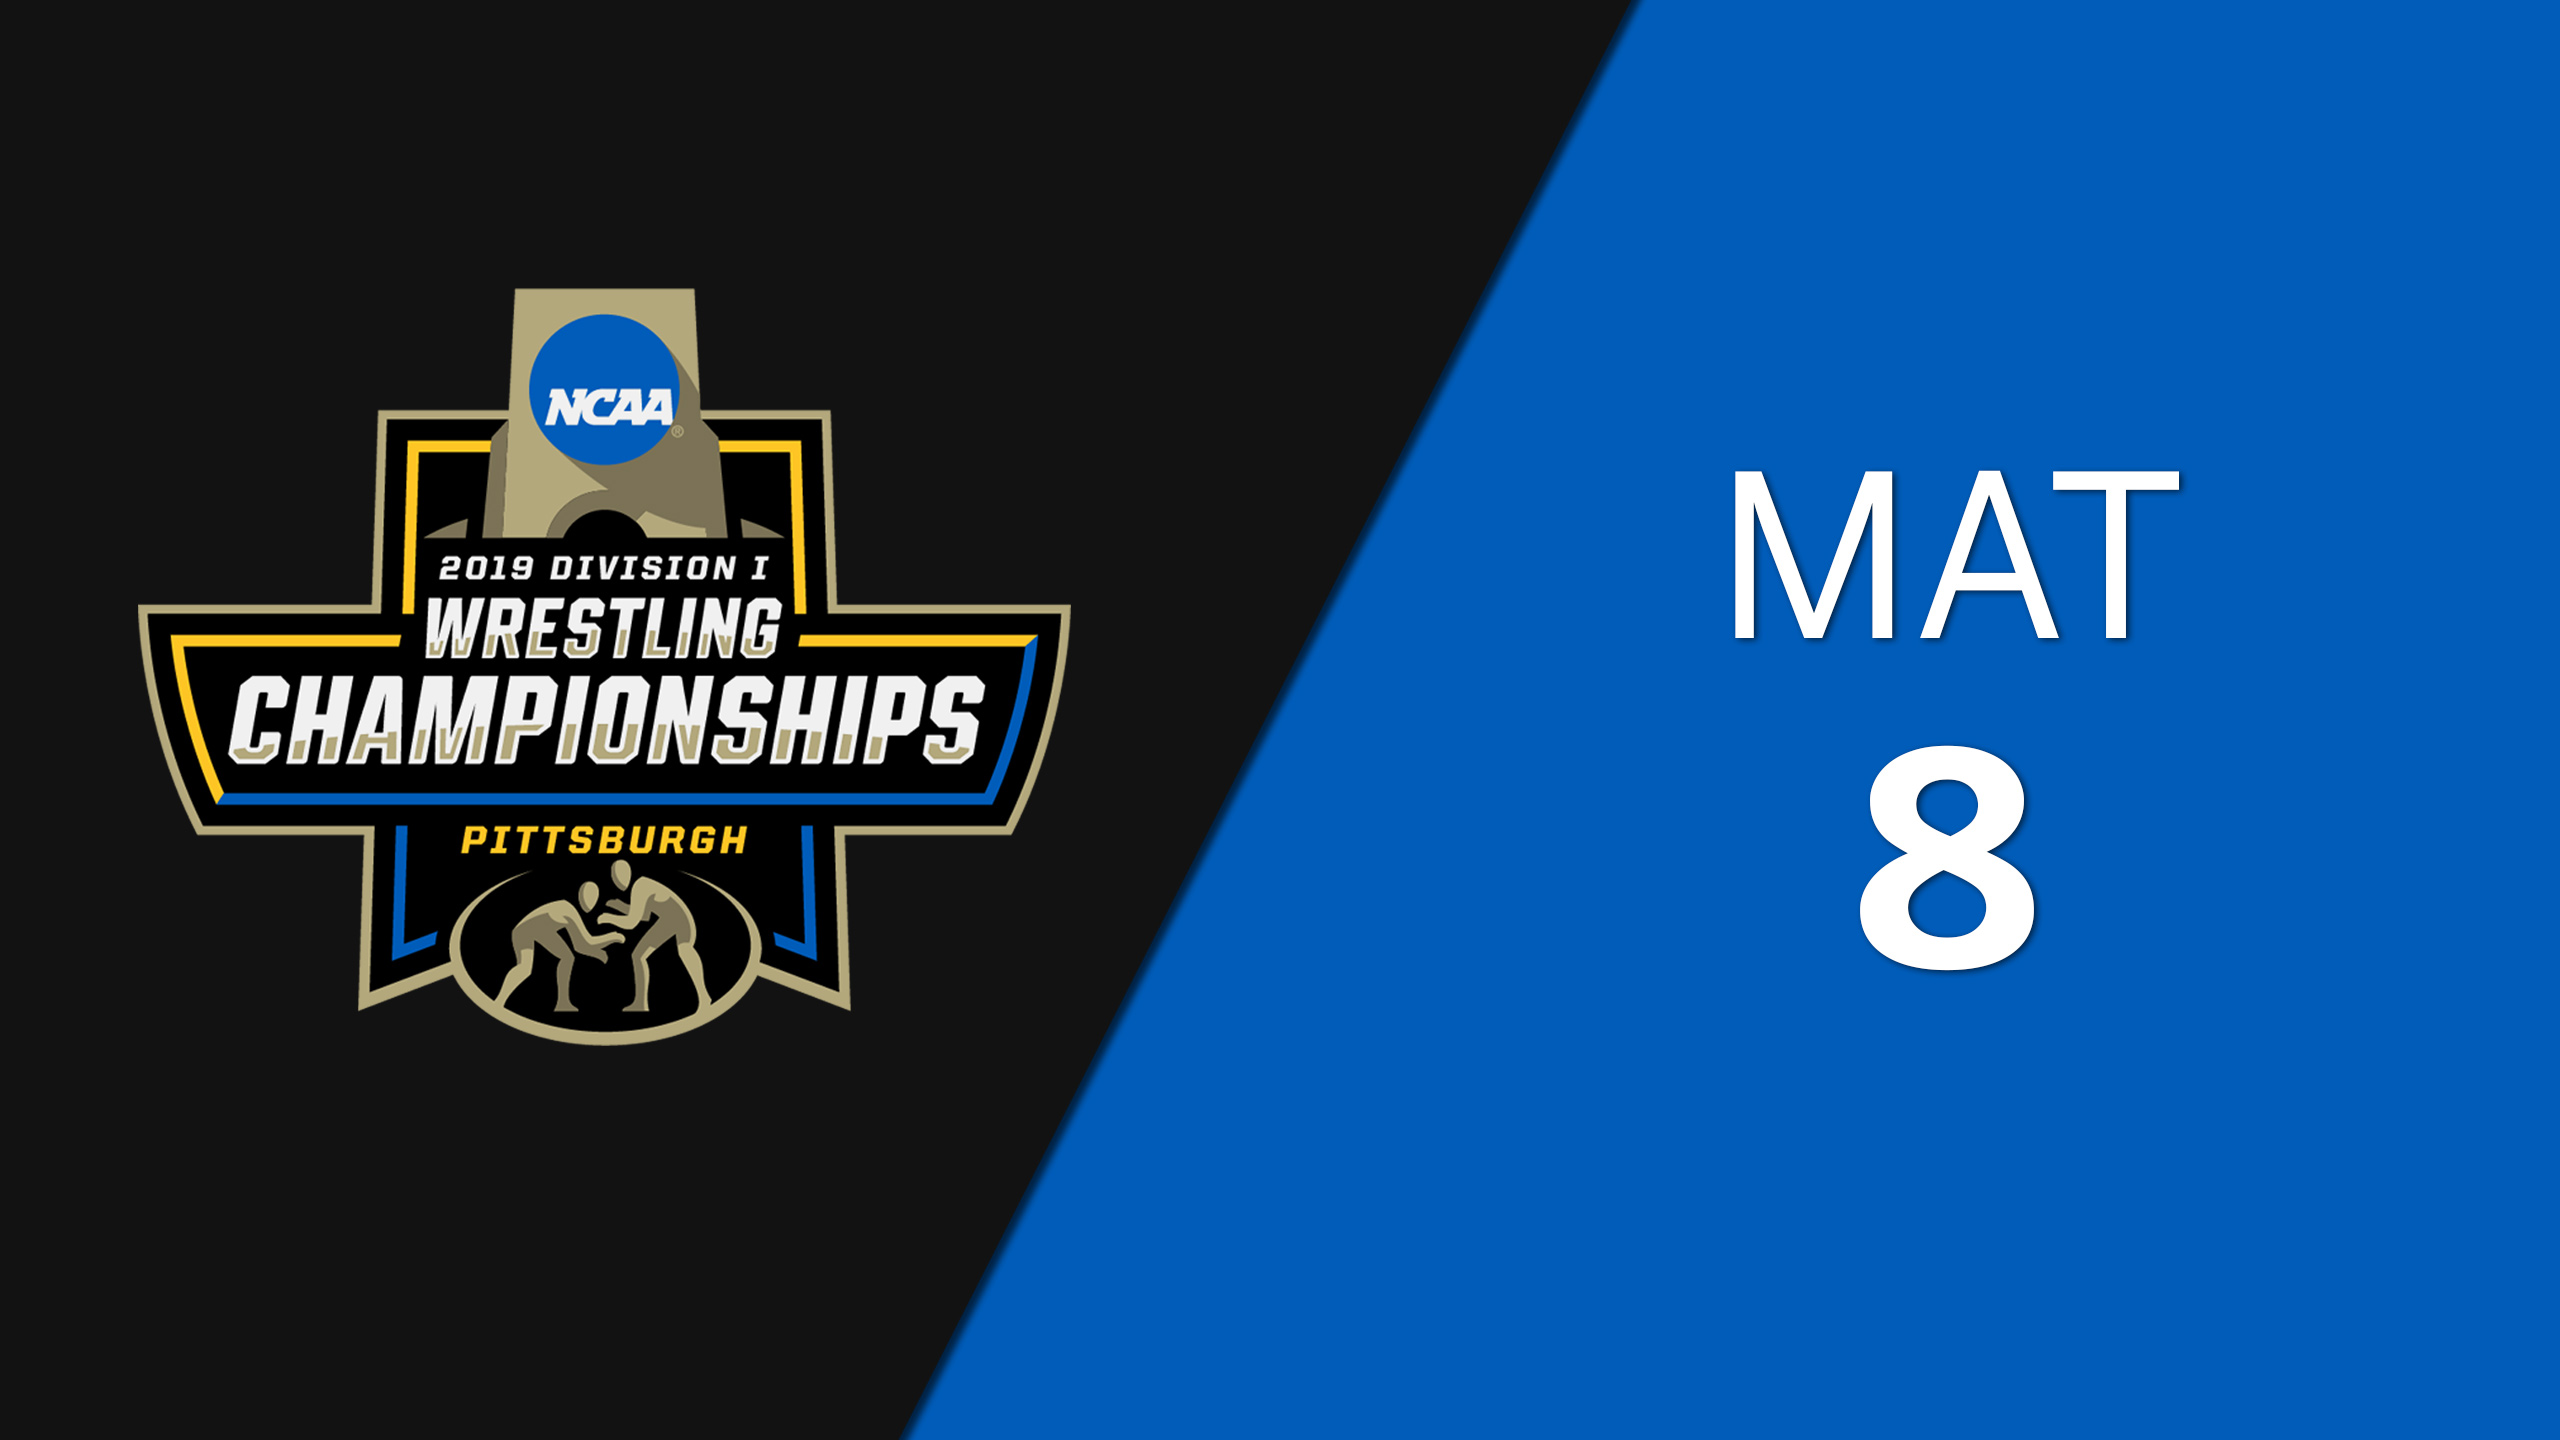 NCAA Wrestling Championship (Mat 8, Second Round)